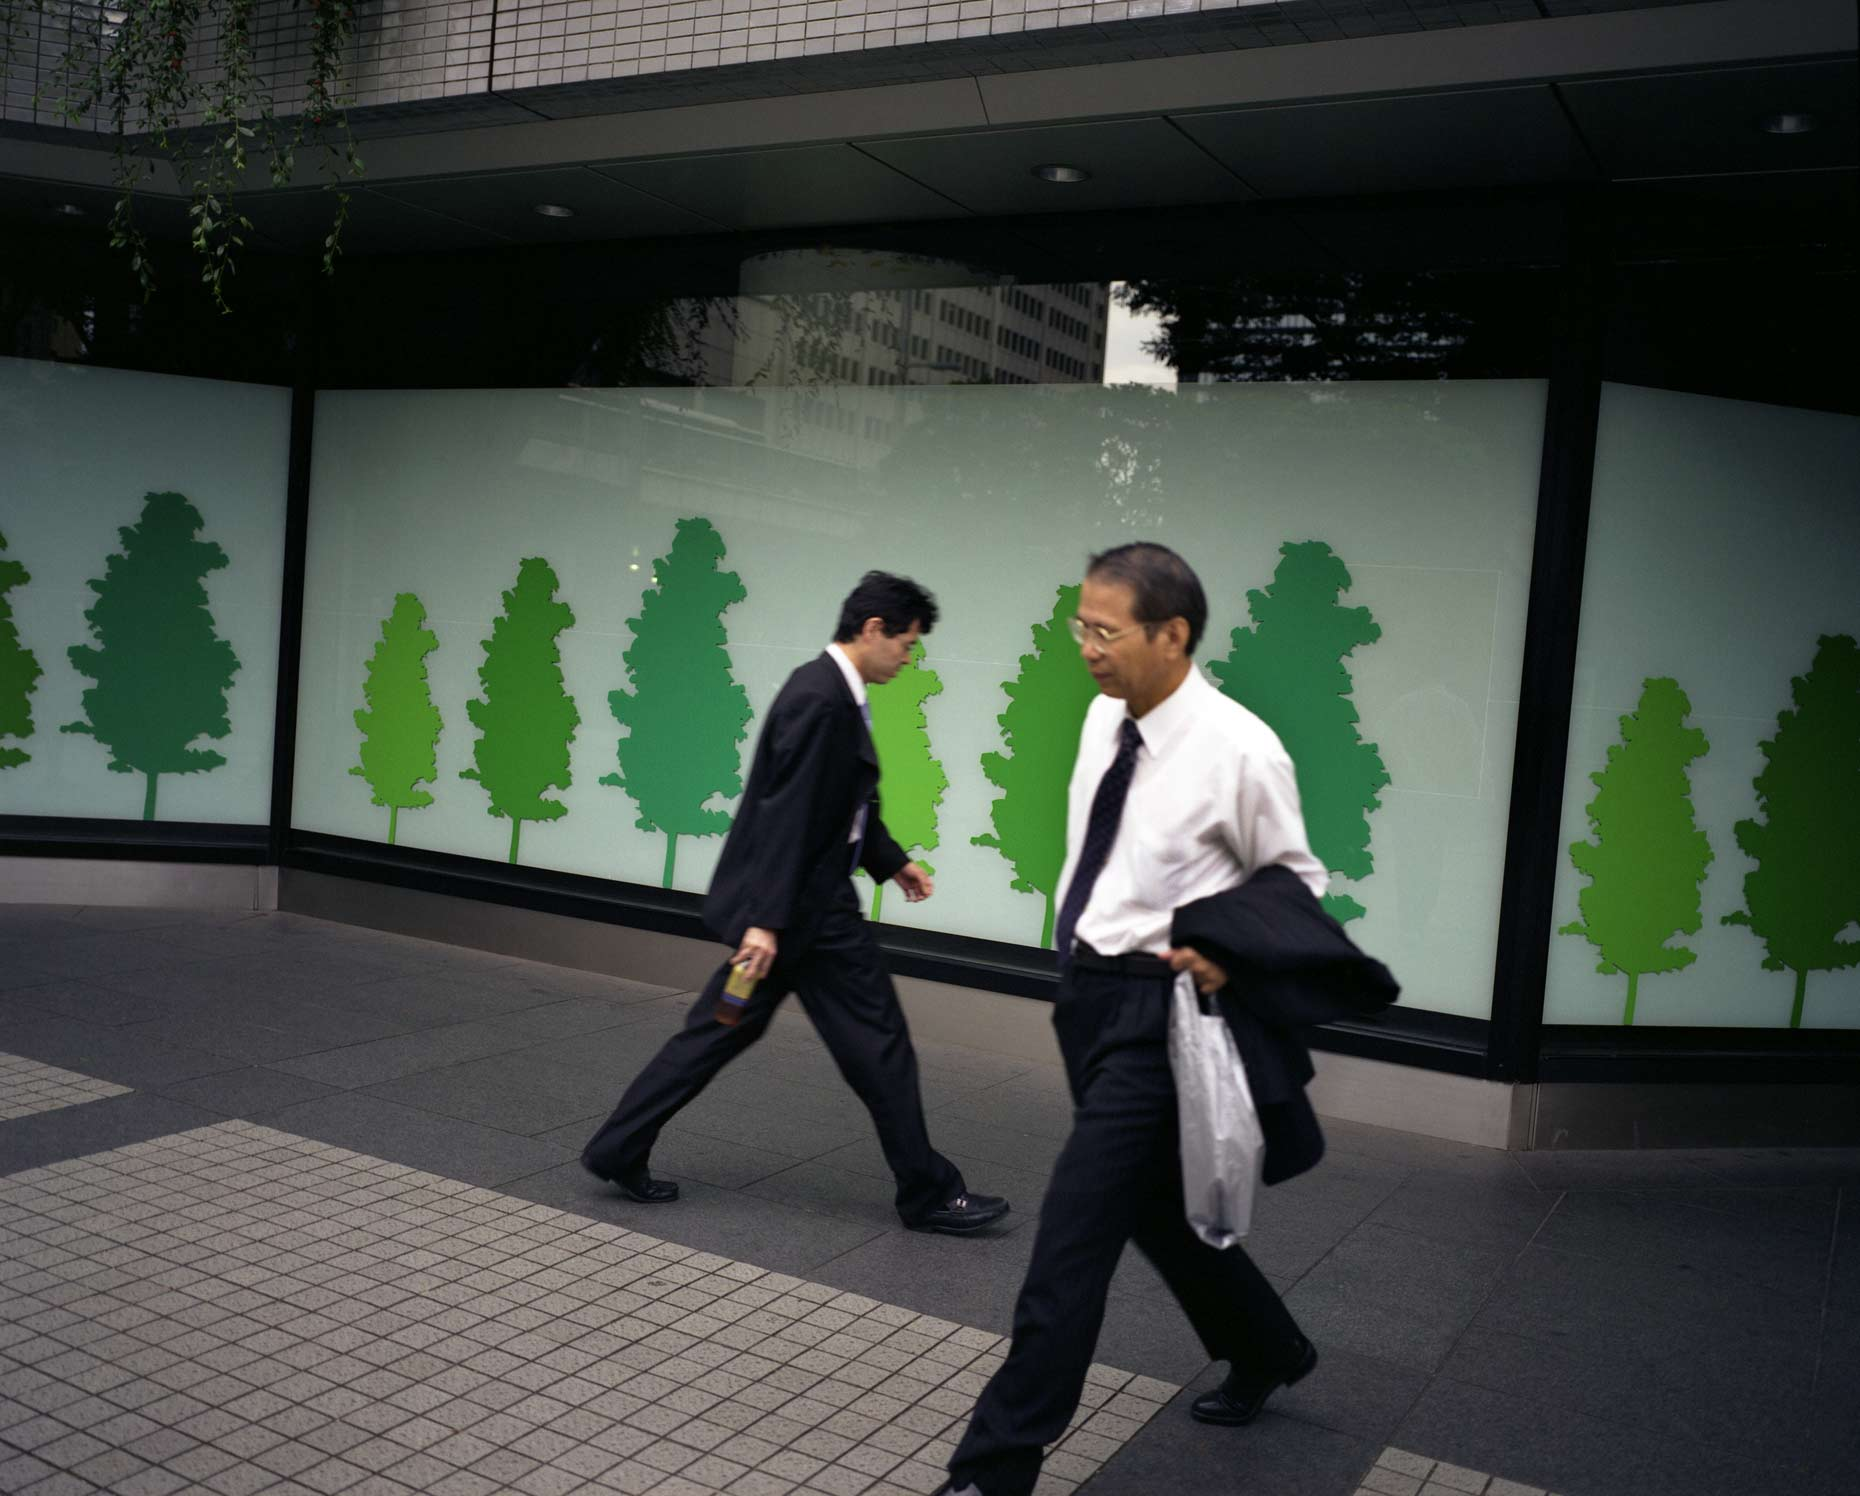 Business men walk past Billboards depicting nature, Tokyo, Japan.